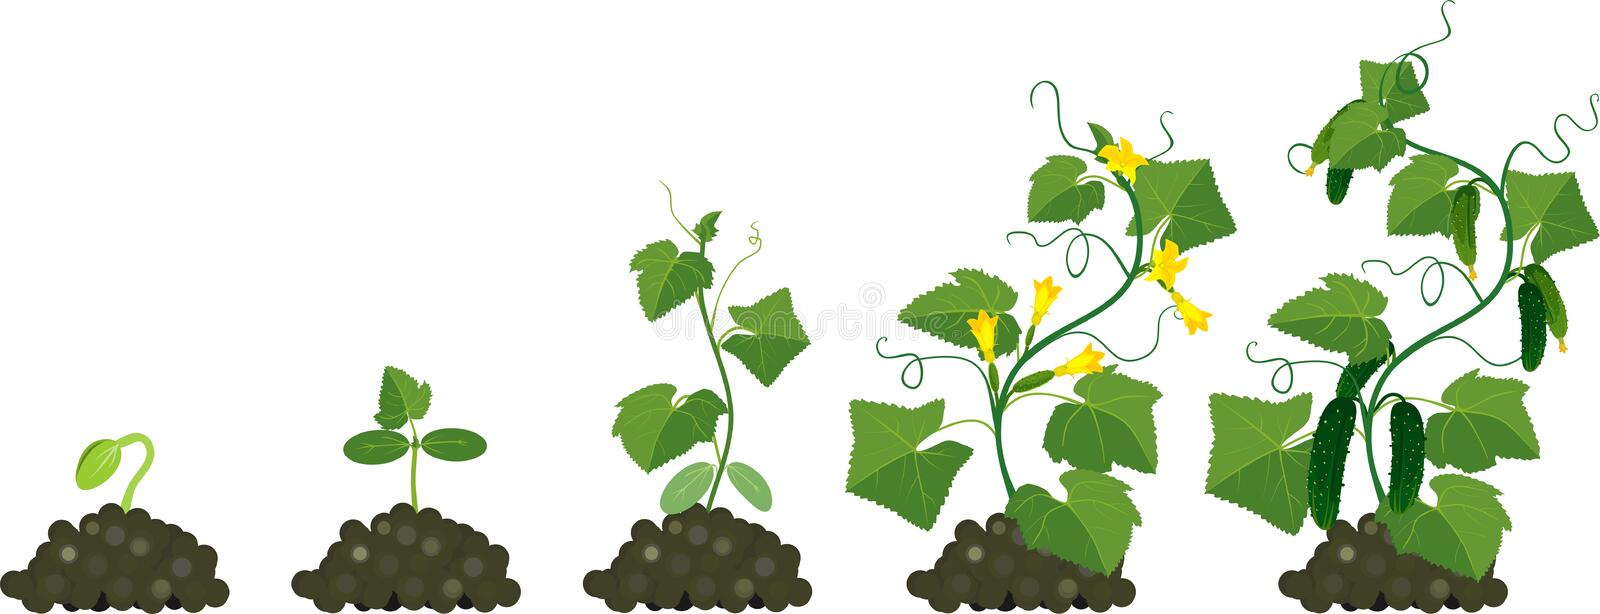 Cucumber plant growth cycle royalty free illustration